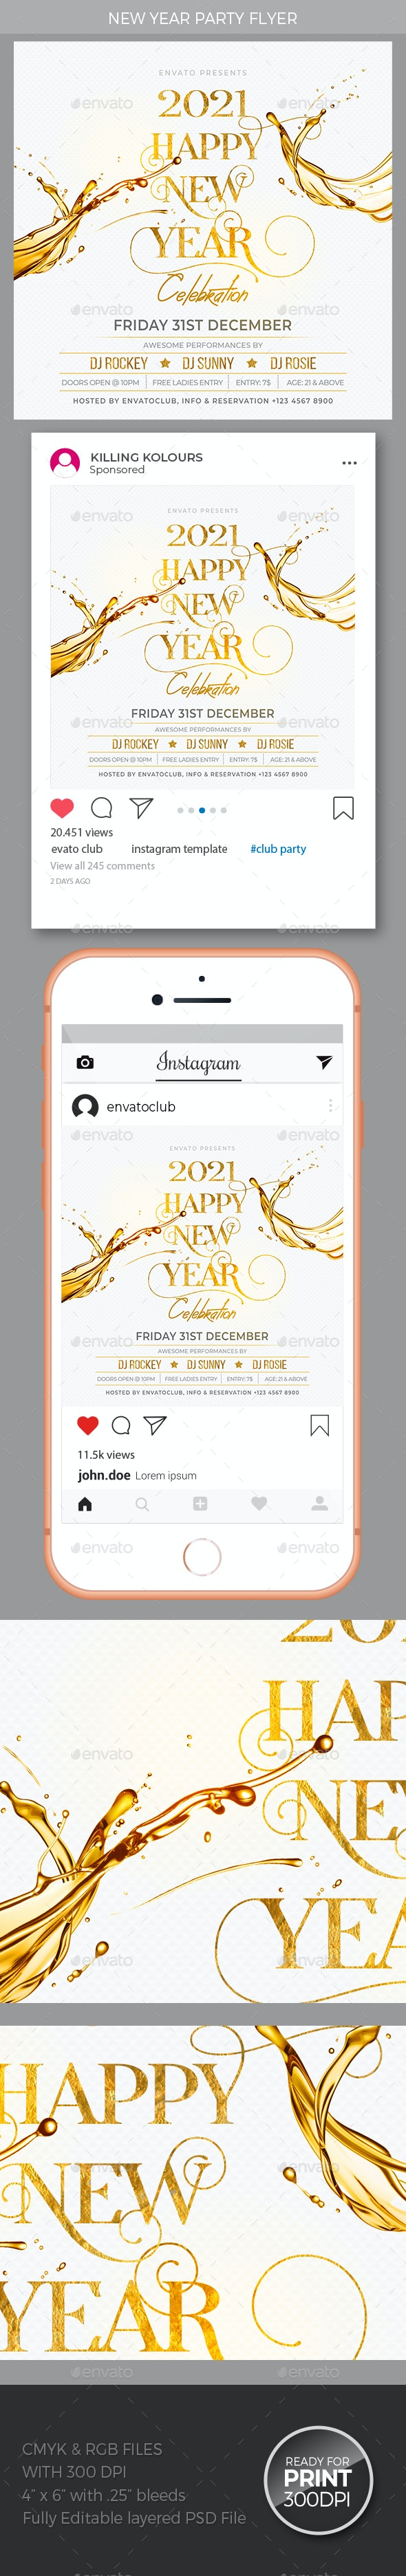 New Year - Events Flyers